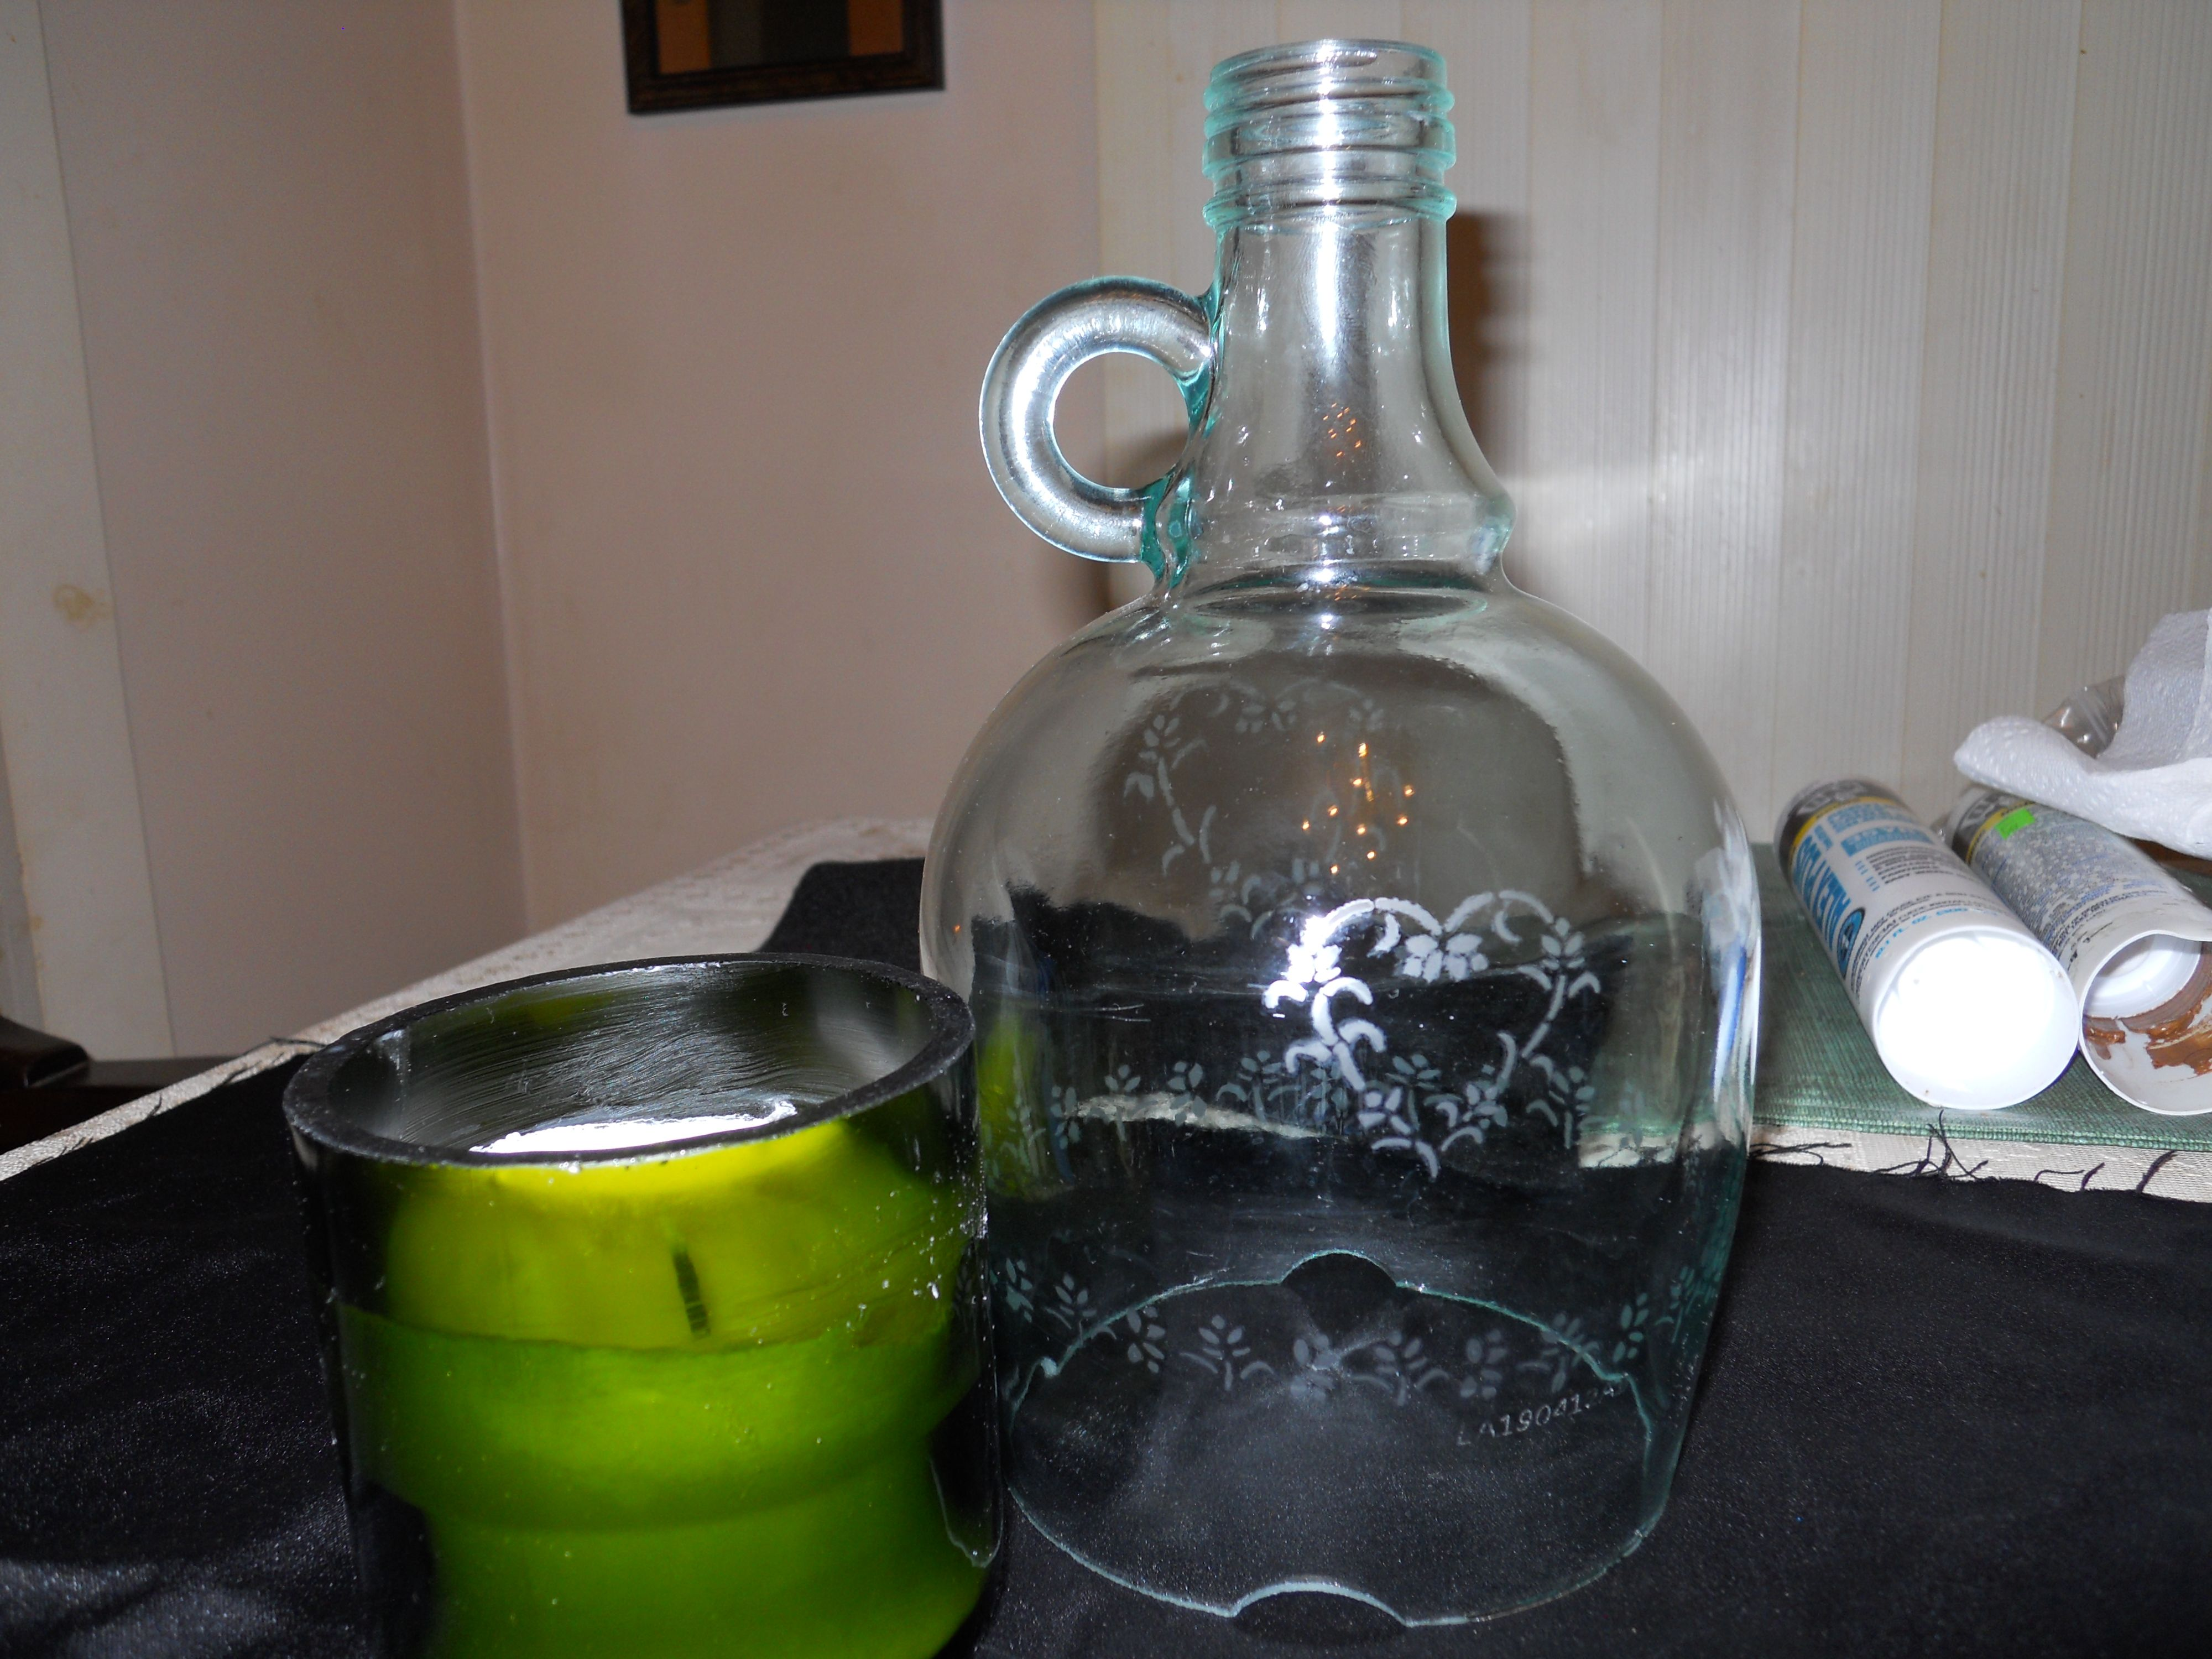 Half Gallon Hurricane Lamp Stenciled etch in glass and repurposed wine bottle candle, soy no scent or dye. For more information thomas.johnson@yahoo.com